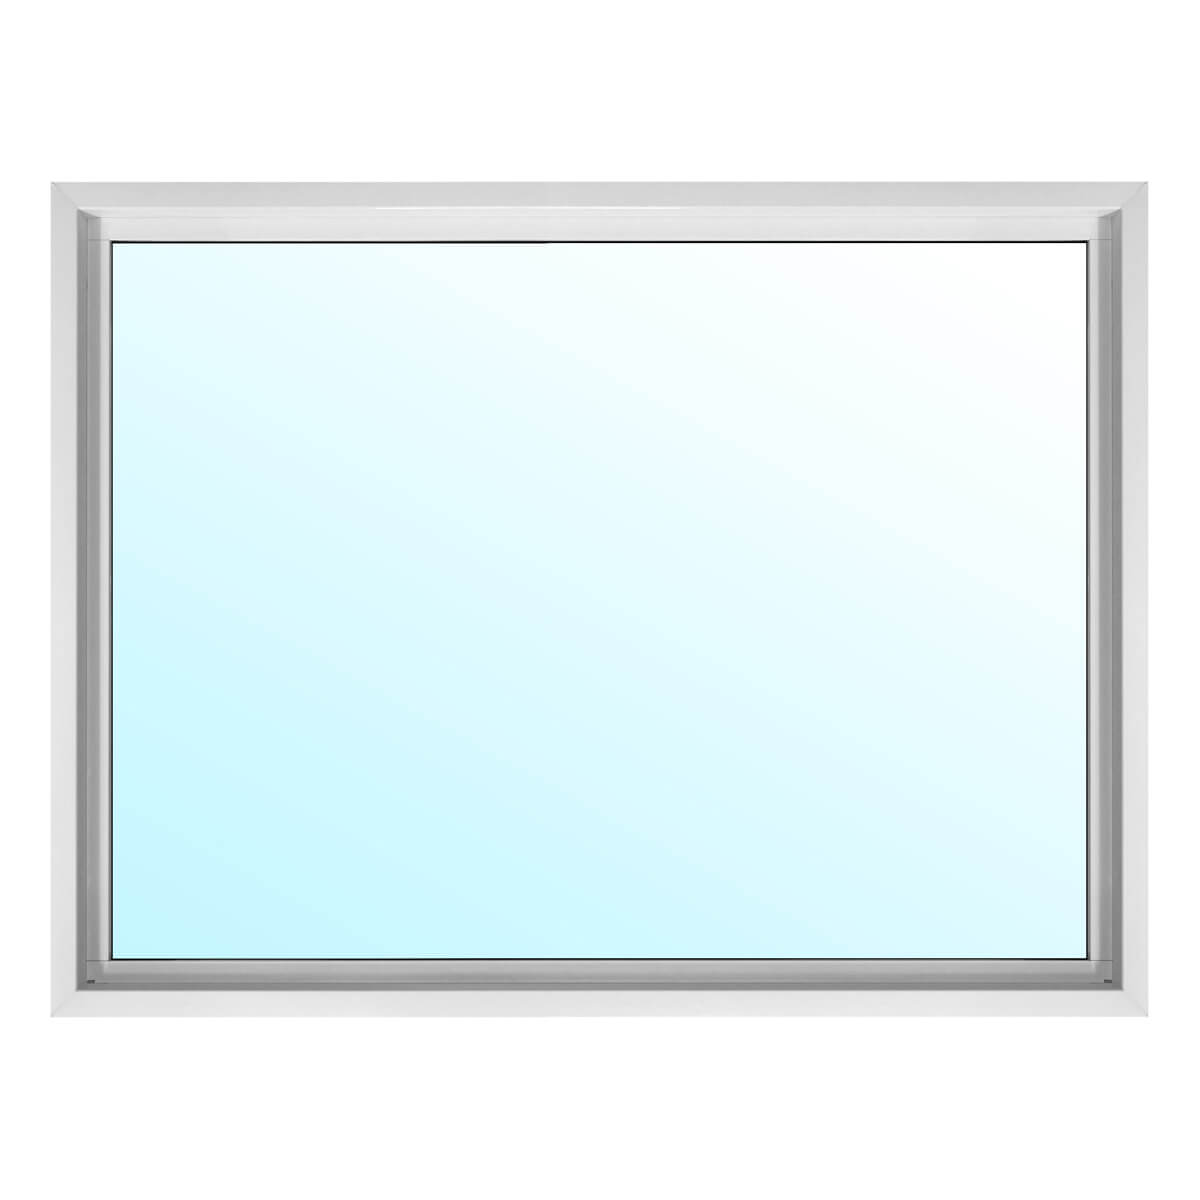 Alpine PVC Picture Window with 6-1/2-in Jamb - Low-E Glass - 40-in x 36-in